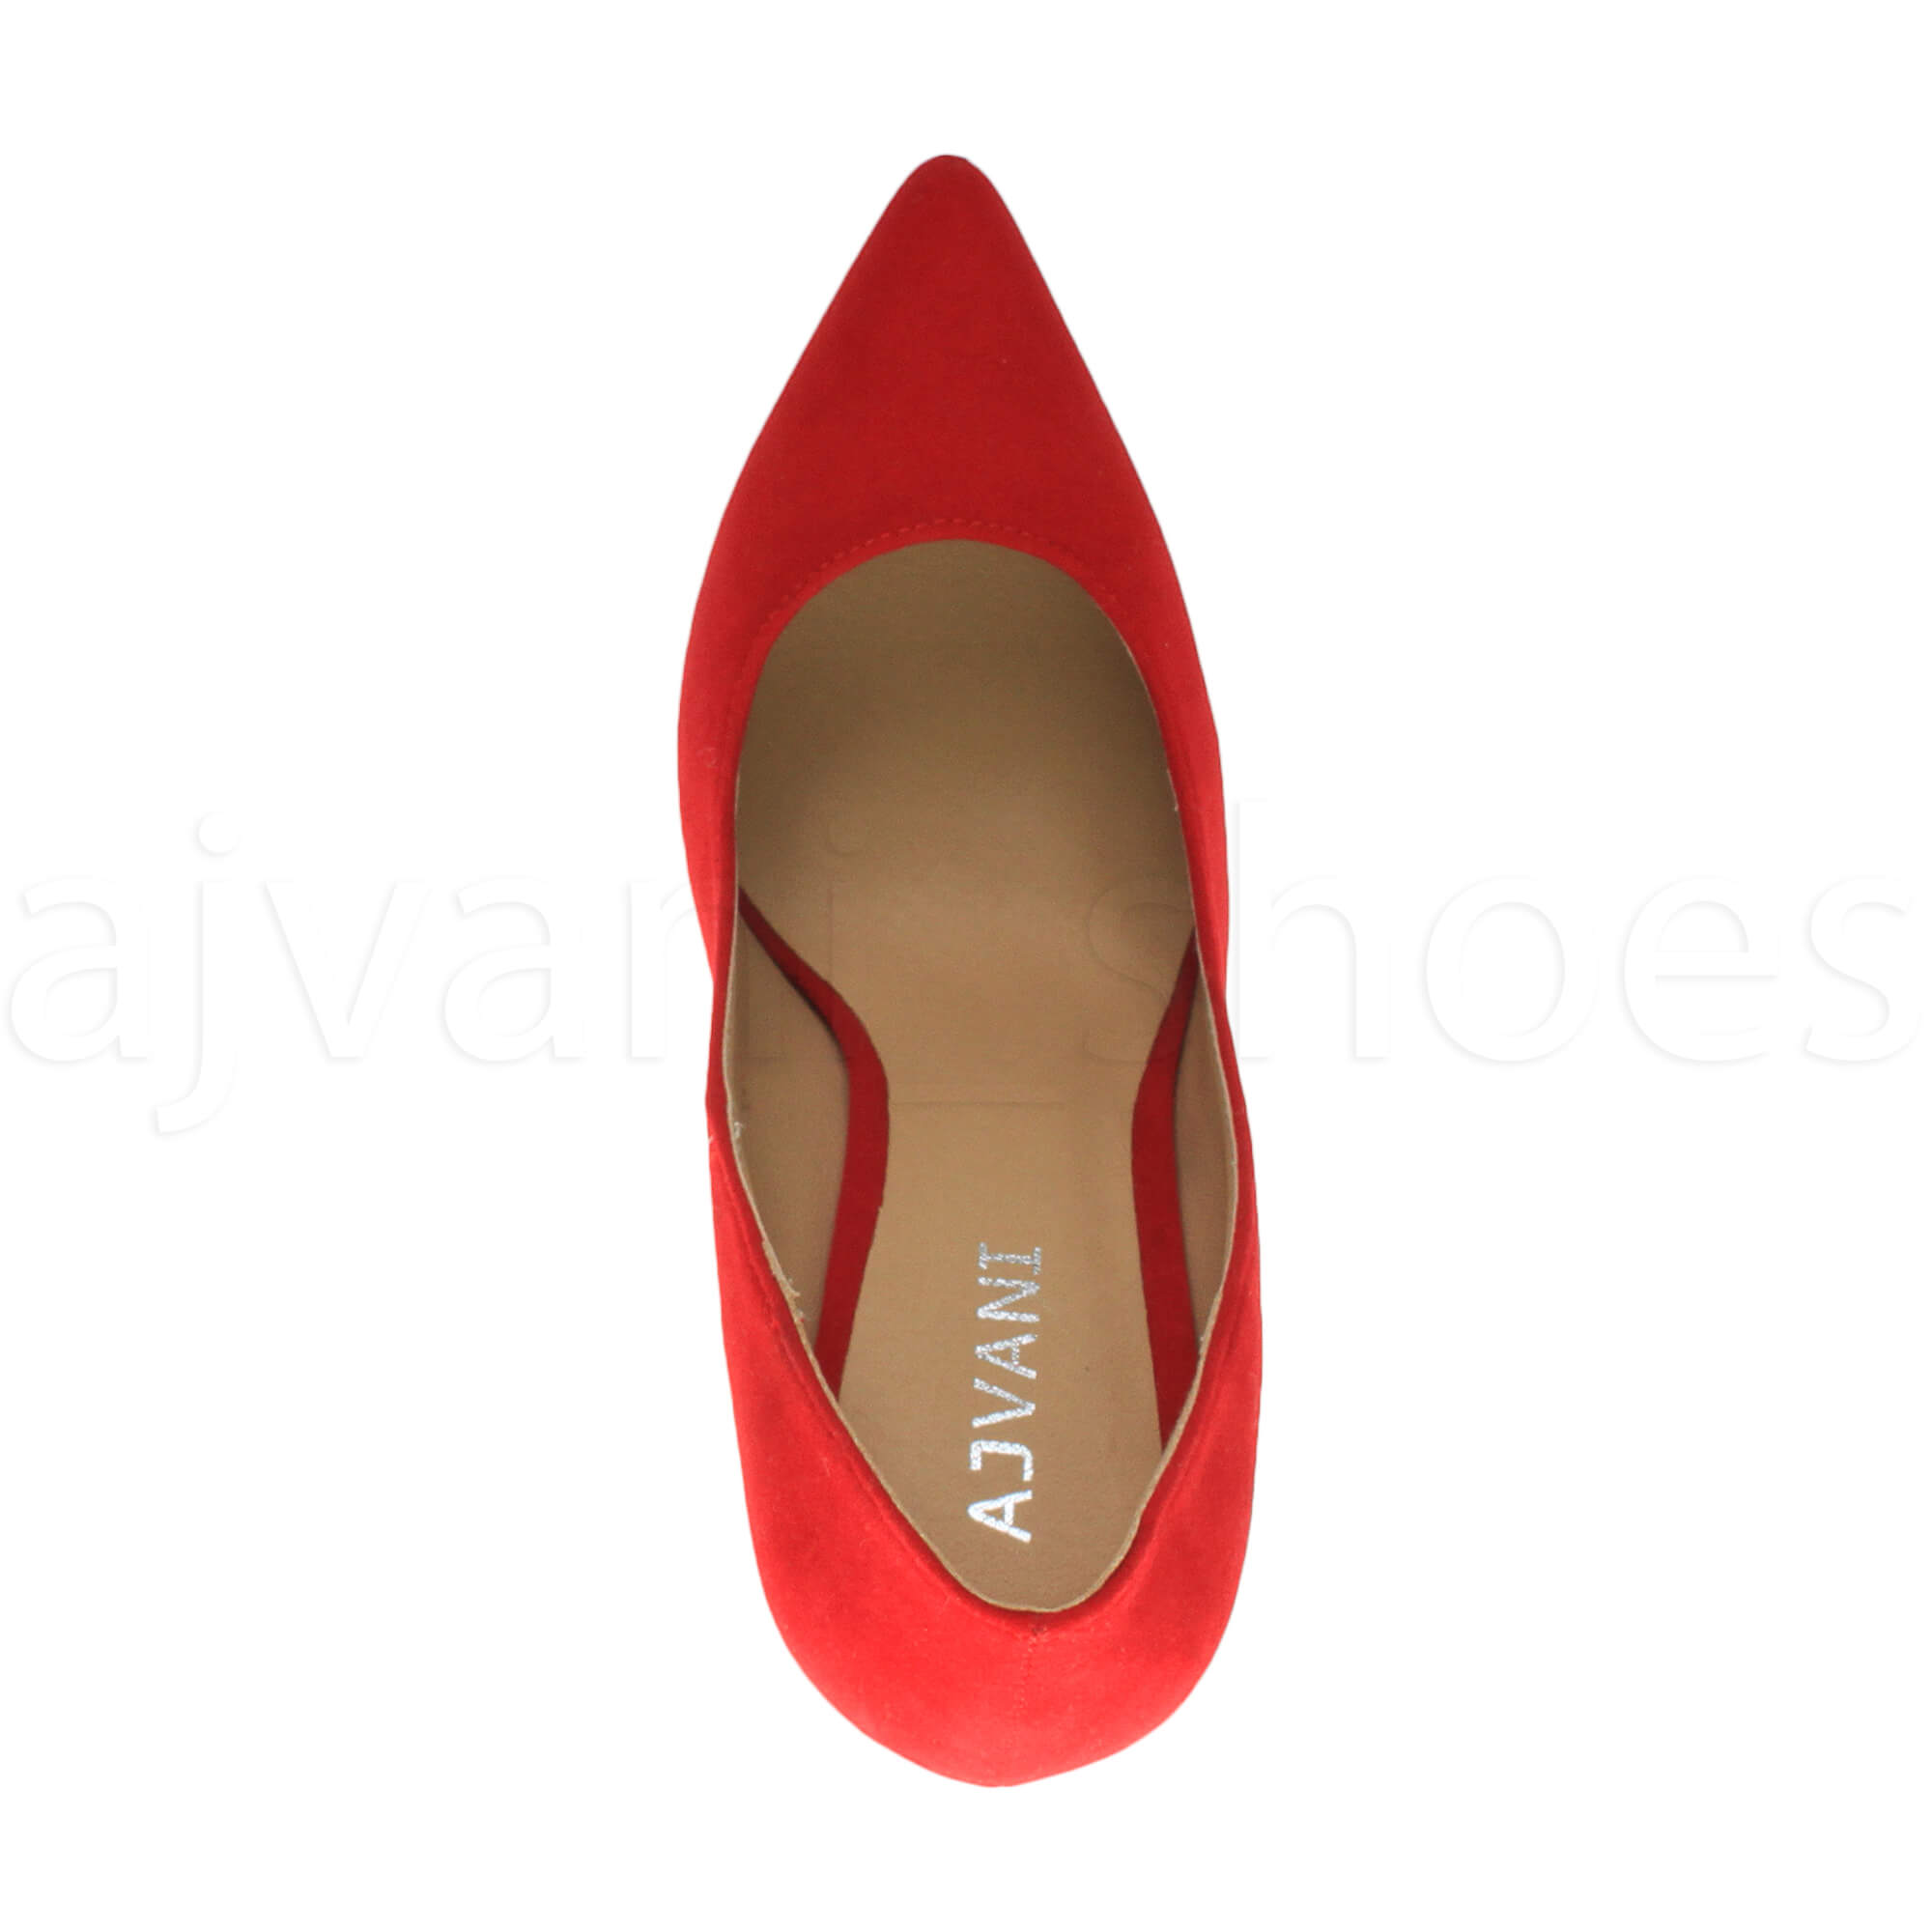 WOMENS-LADIES-HIGH-HEEL-POINTED-CONTRAST-COURT-SMART-PARTY-WORK-SHOES-PUMPS-SIZE thumbnail 174